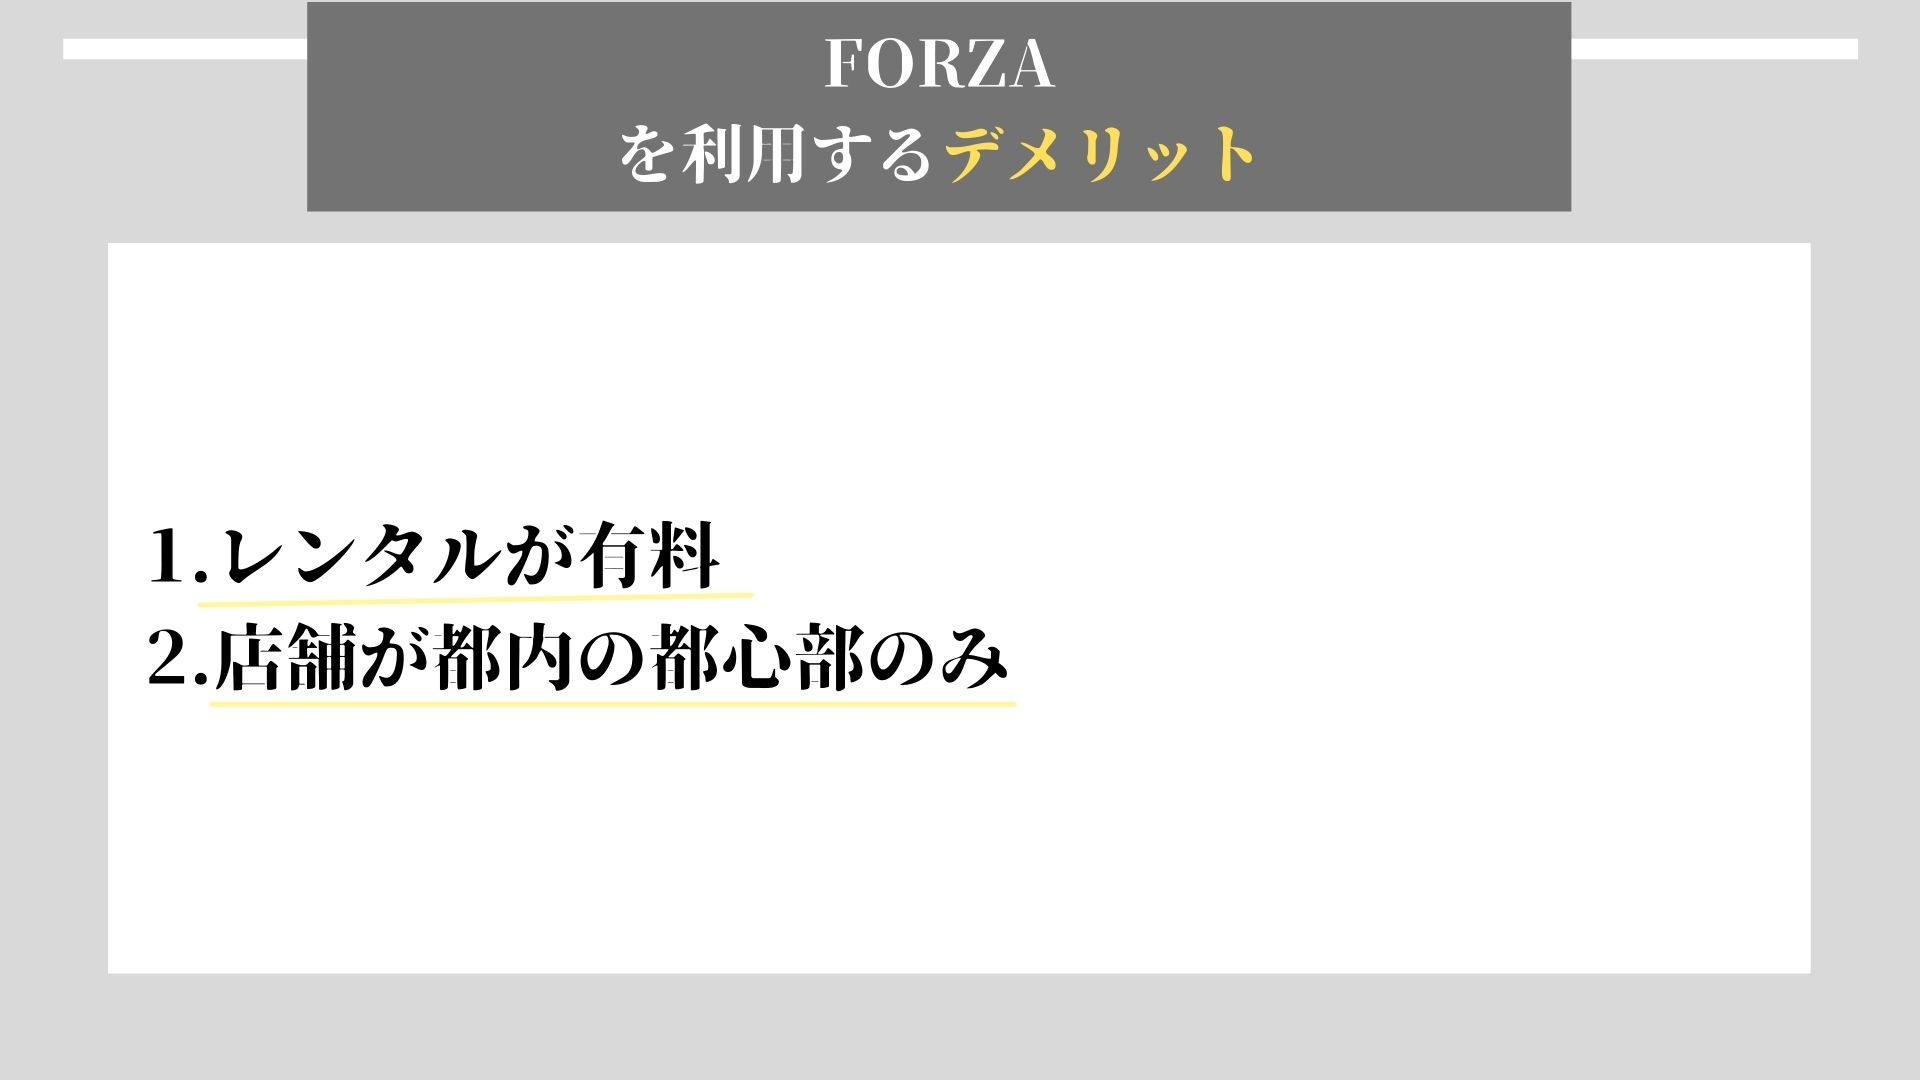 FORZA デメリット